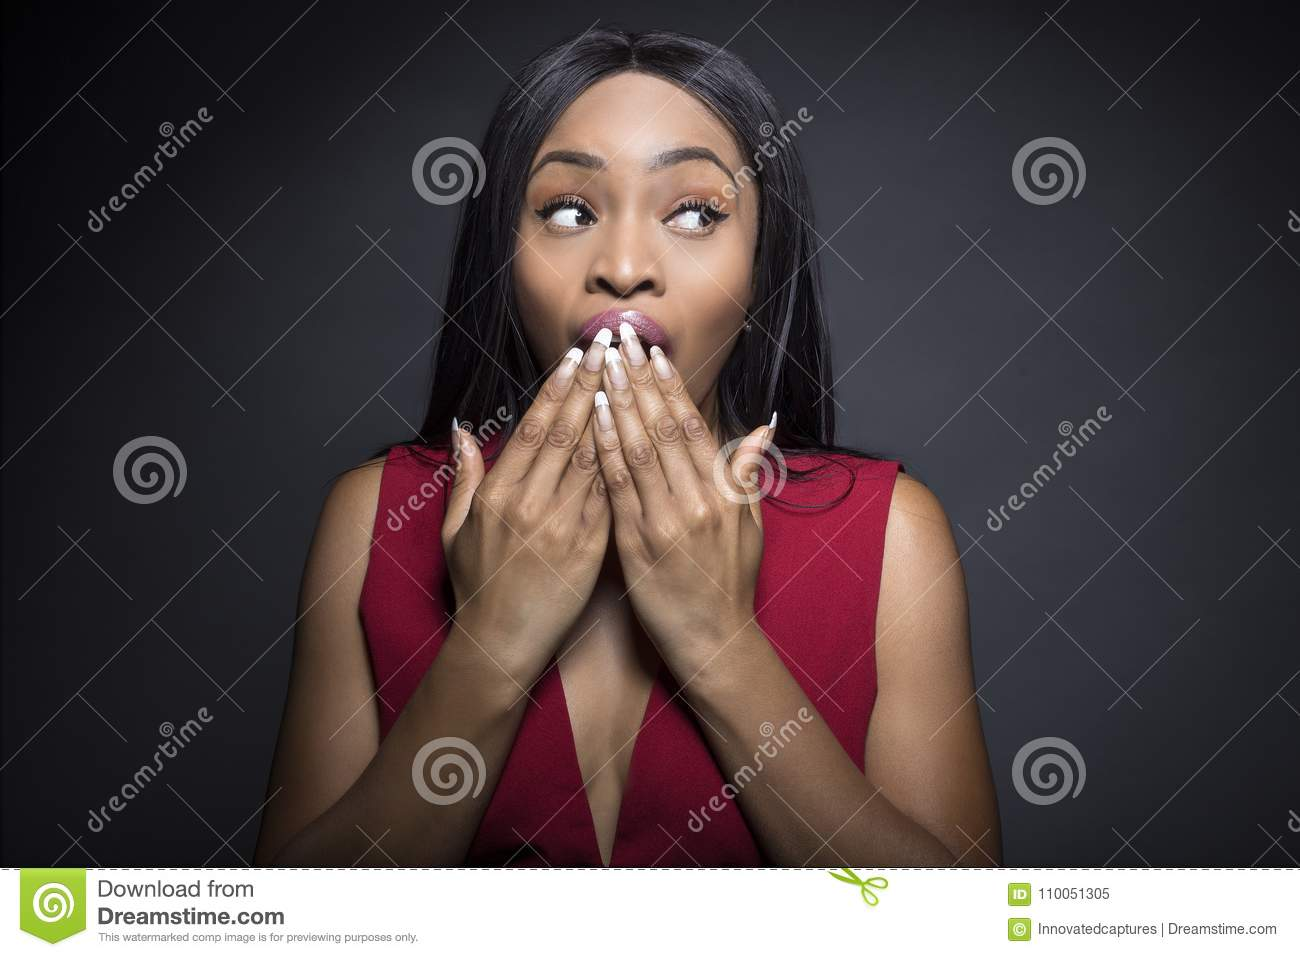 Black Female with Shocked Expressions